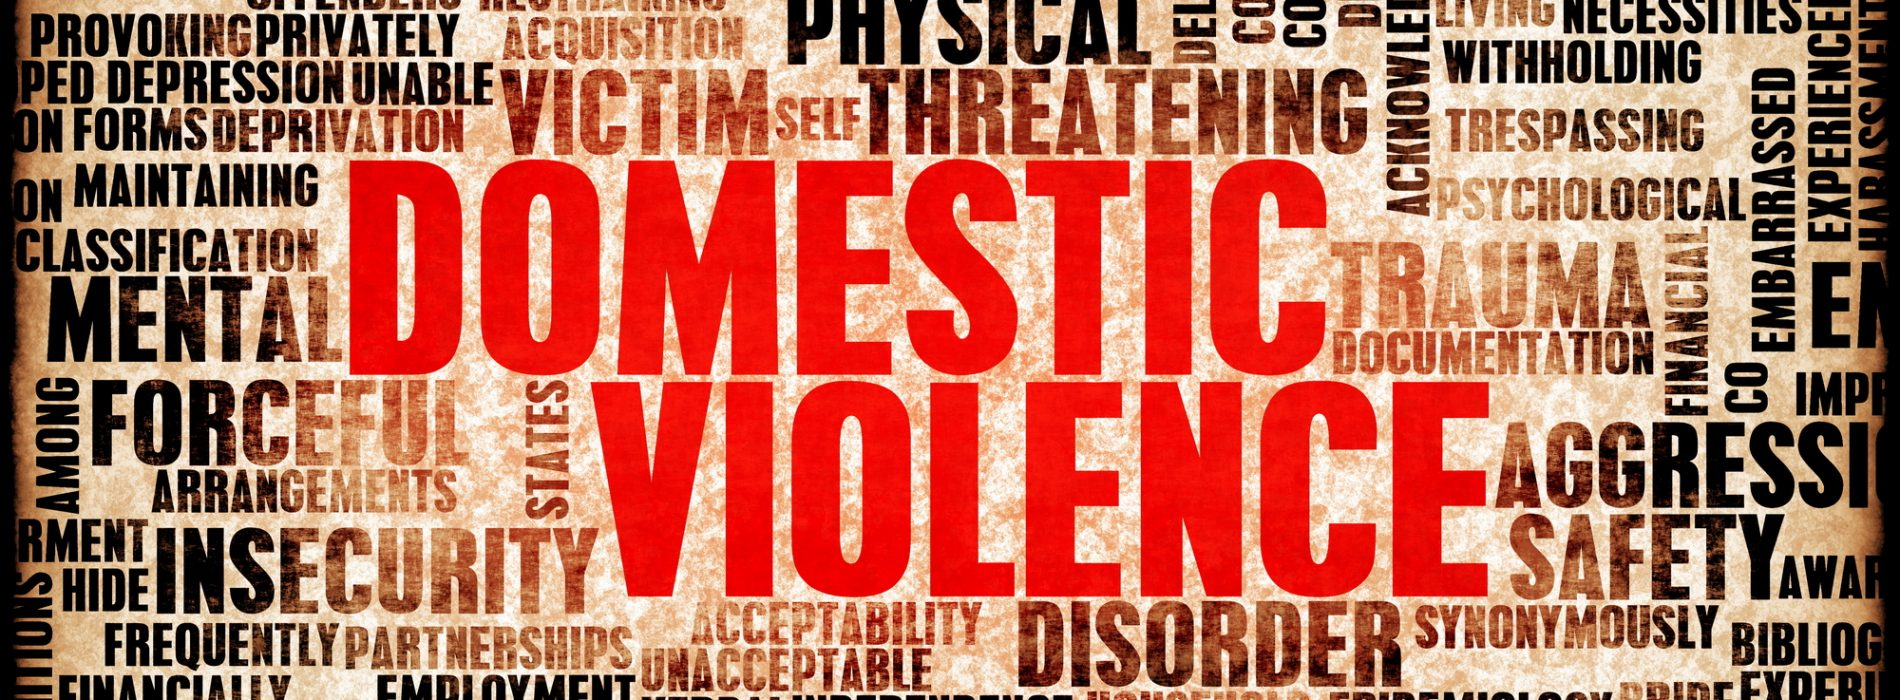 Threats or Violence During a Divorce: What Can You Do to Protect Yourself?